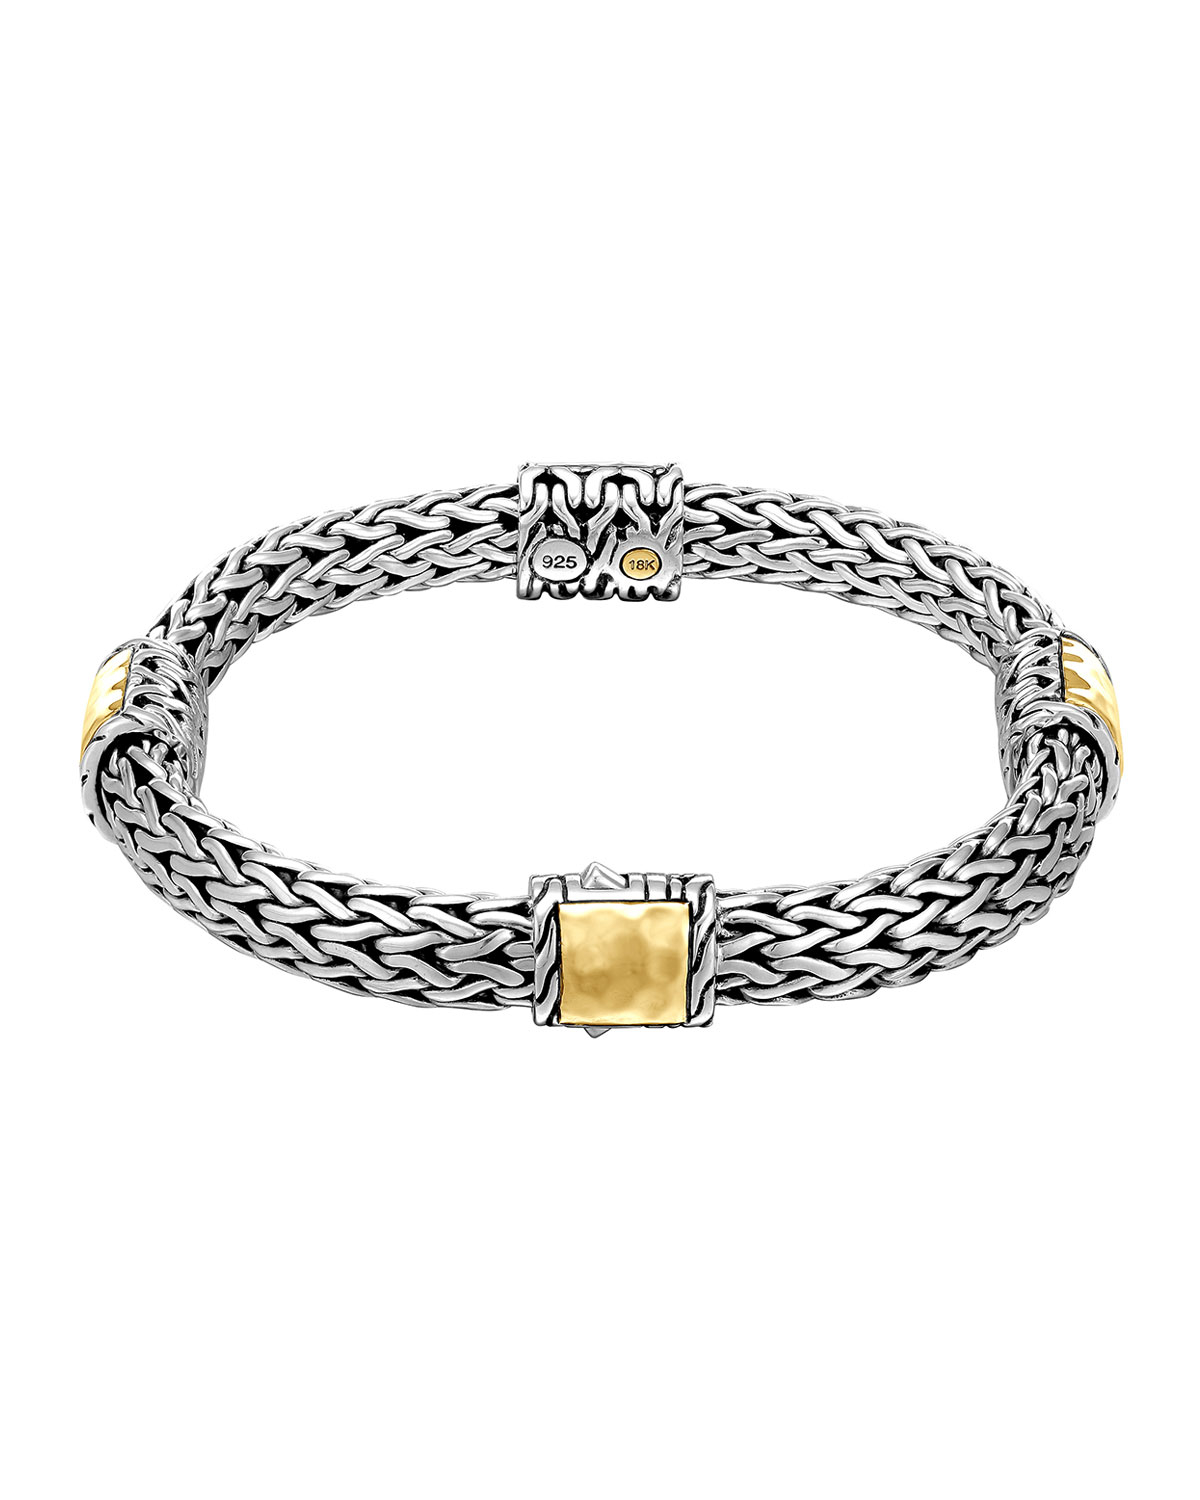 John Hardy Classic Chain Silver Bracelet With Gold